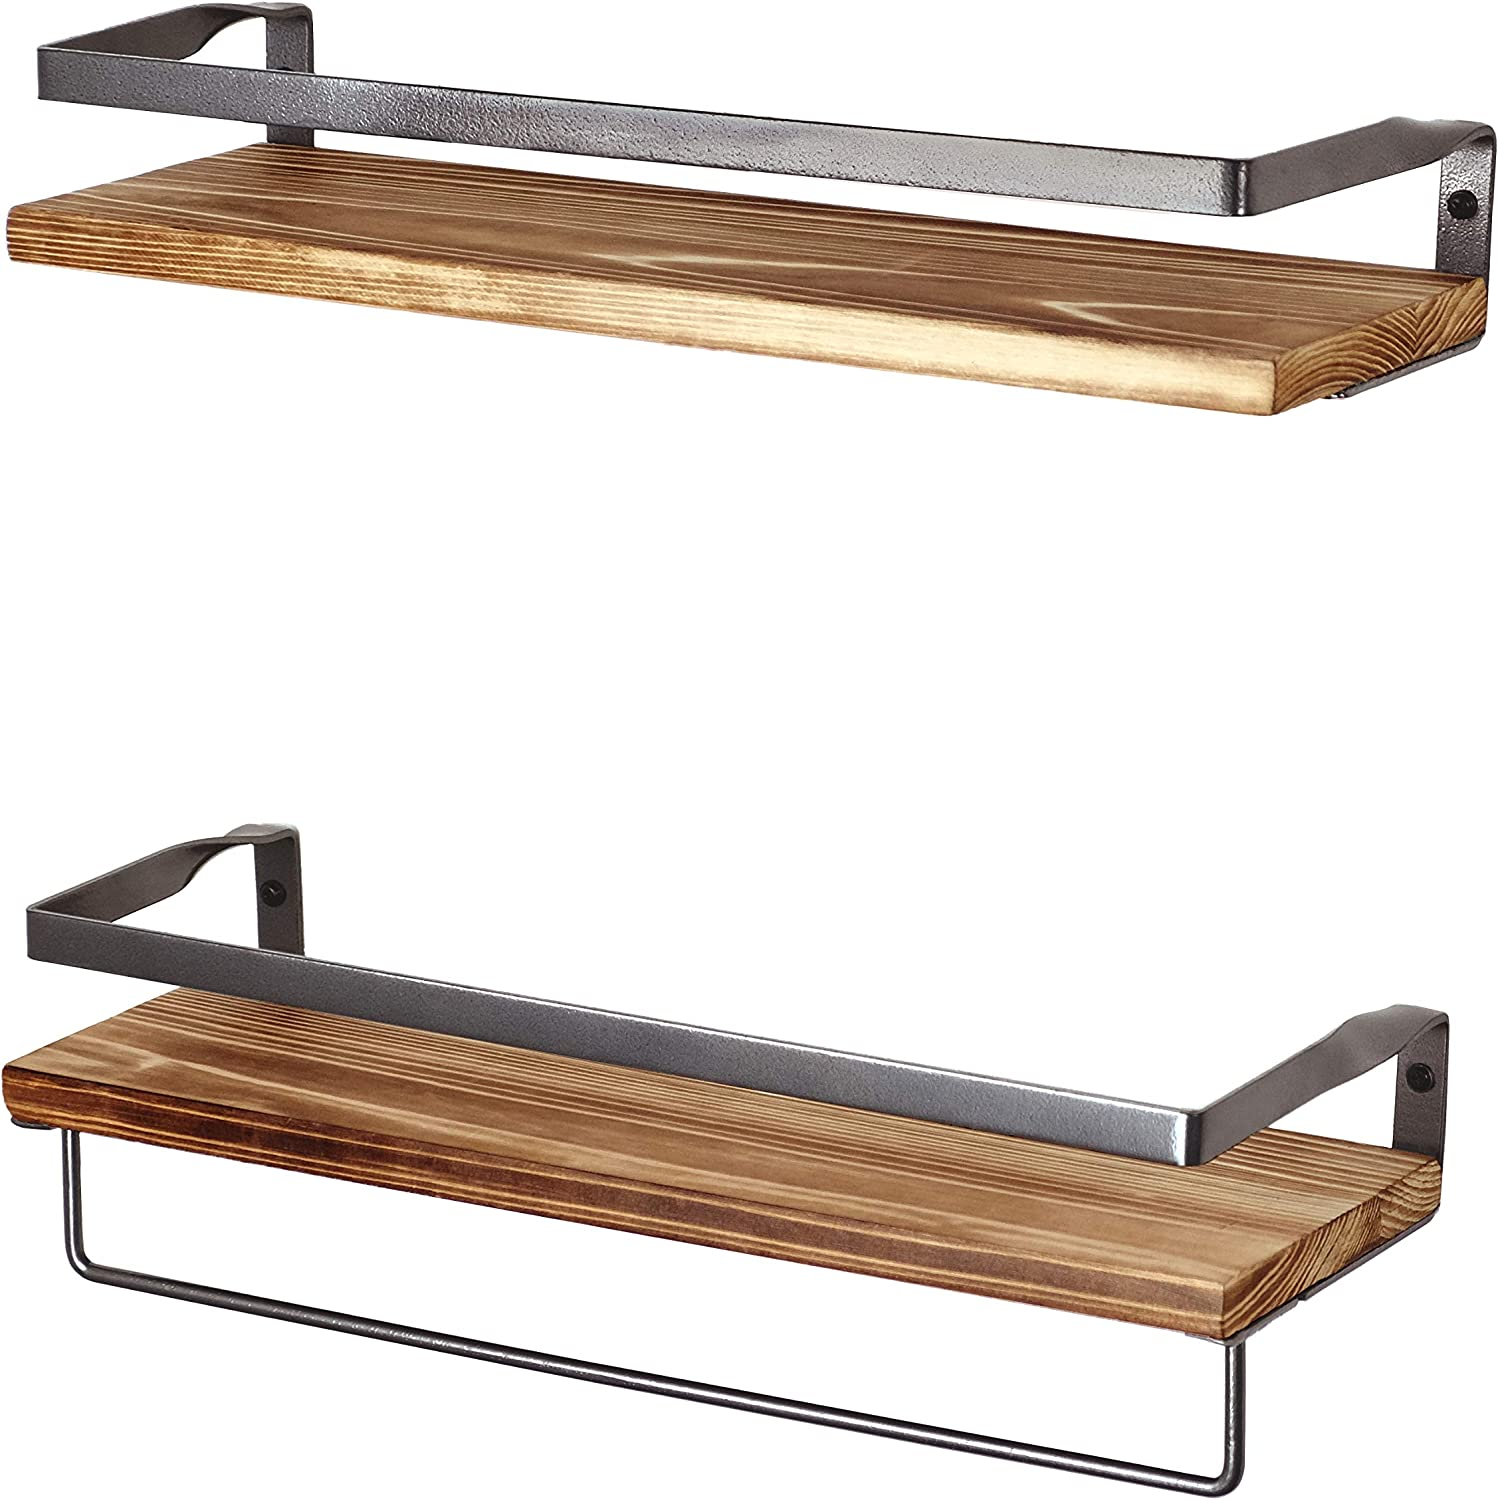 Peter's Goods Rustic Floating Wall Shelves with Rails - Decorative Storage for Kitchen, Bathroom, and Bedroom - Elegant, Modern Shelving - Torched Fir Wood, Black Silver Metal Frame - Set of 2